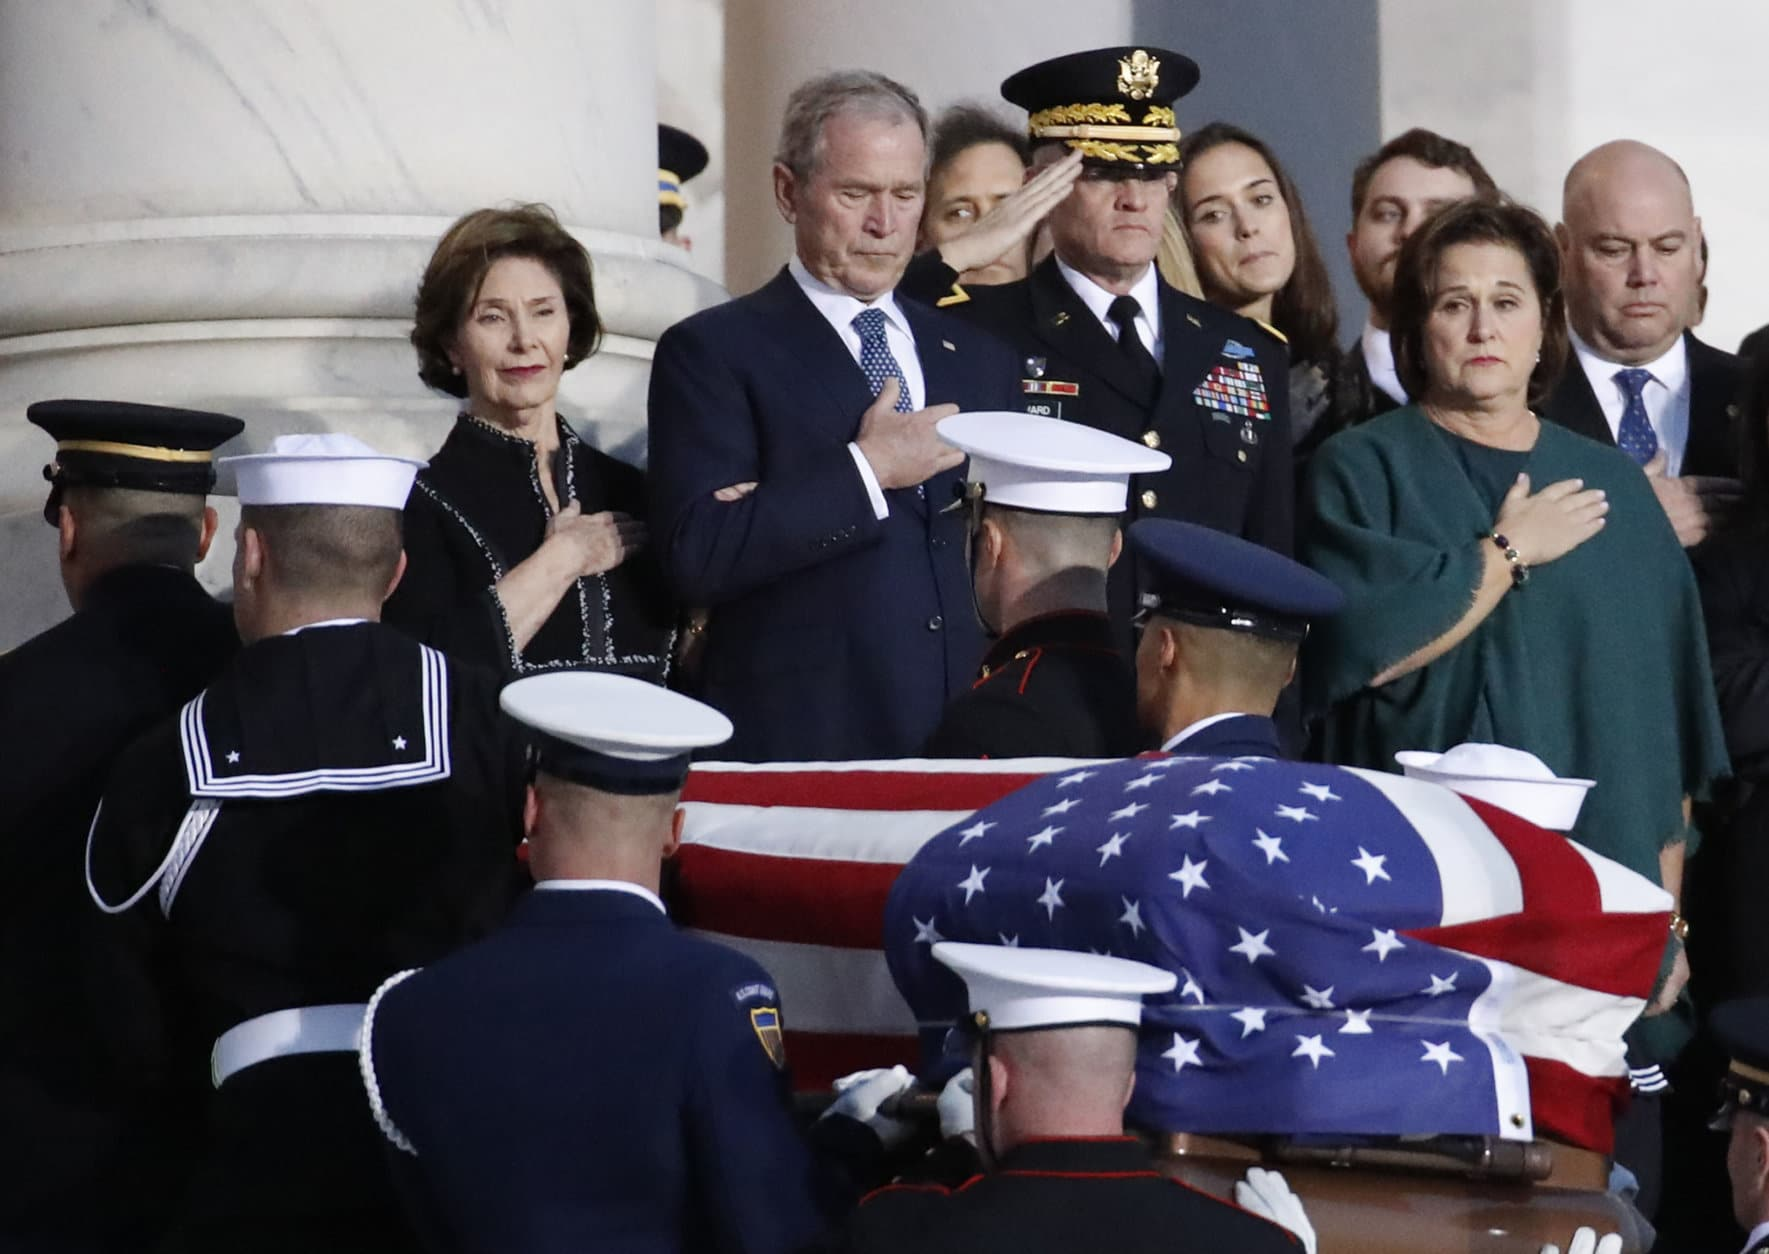 Former President George W. Bush and other family members watch as the flag-draped of former President George H.W. Bush is carried by a joint services military honor guard to lie in state in the rotunda of the U.S. Capitol, Monday, Dec. 3, 2018, in Washington.(AP Photo/Alex Brandon, Pool)